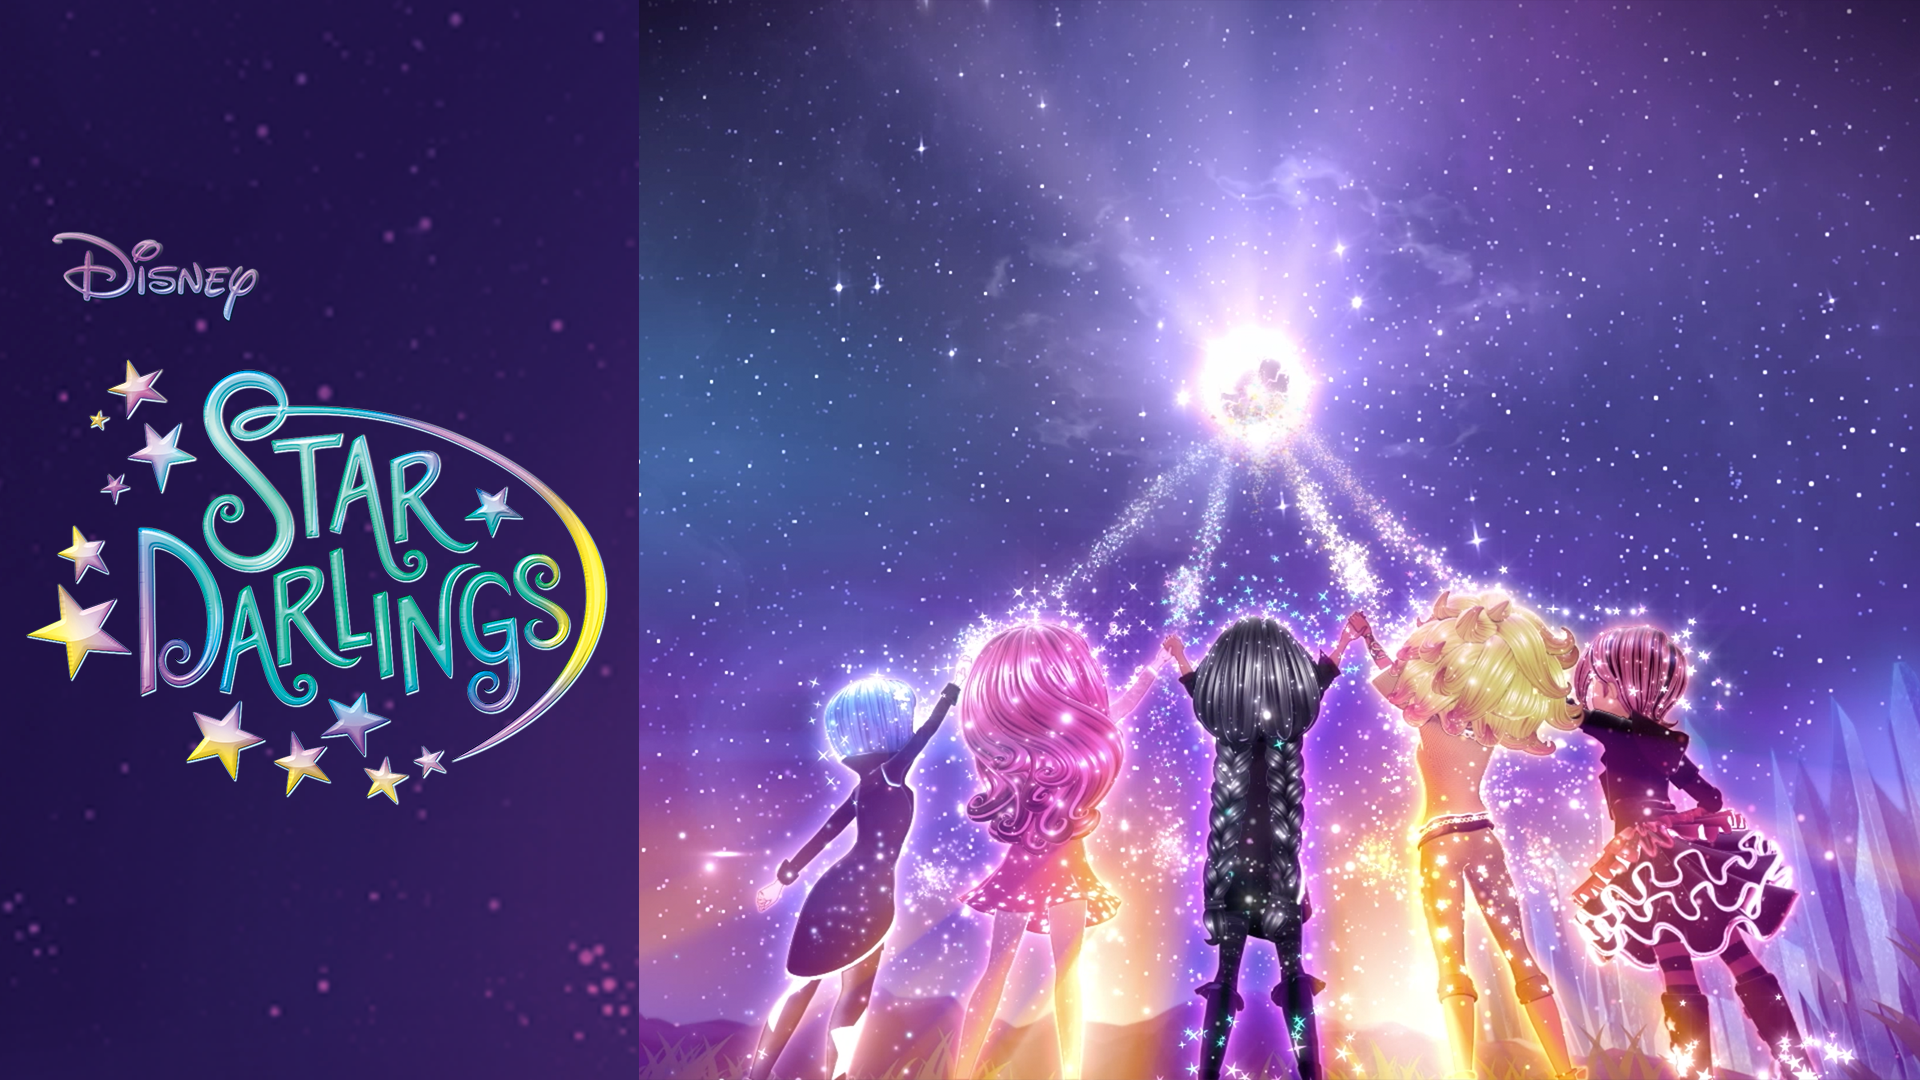 Shining Starlings - Episode 8 - Disney's Star Darlings